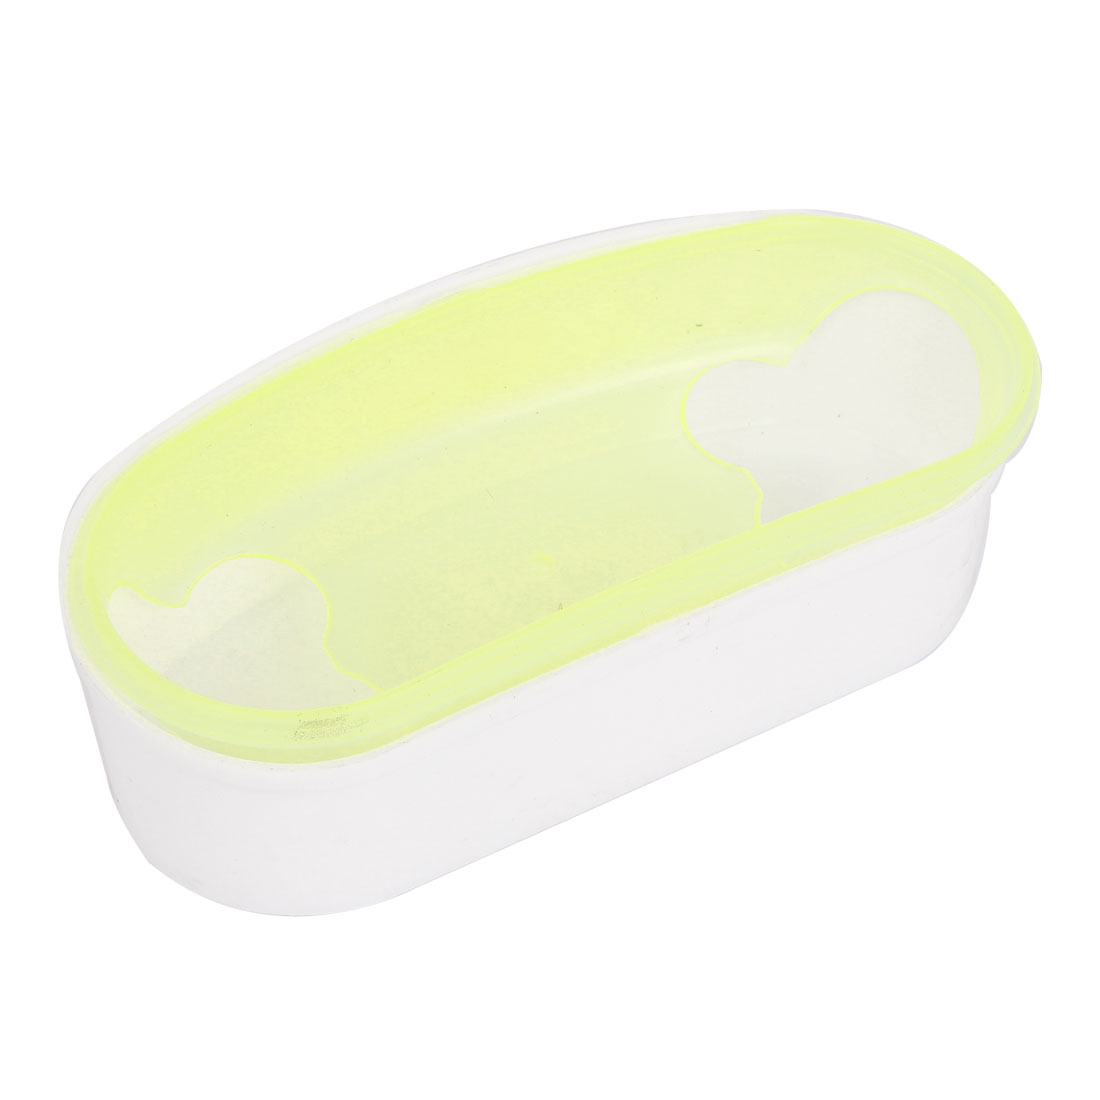 Yellow White Dual Hole Hamsters Toilet Sand Cage Pet Bathtub Bathroom